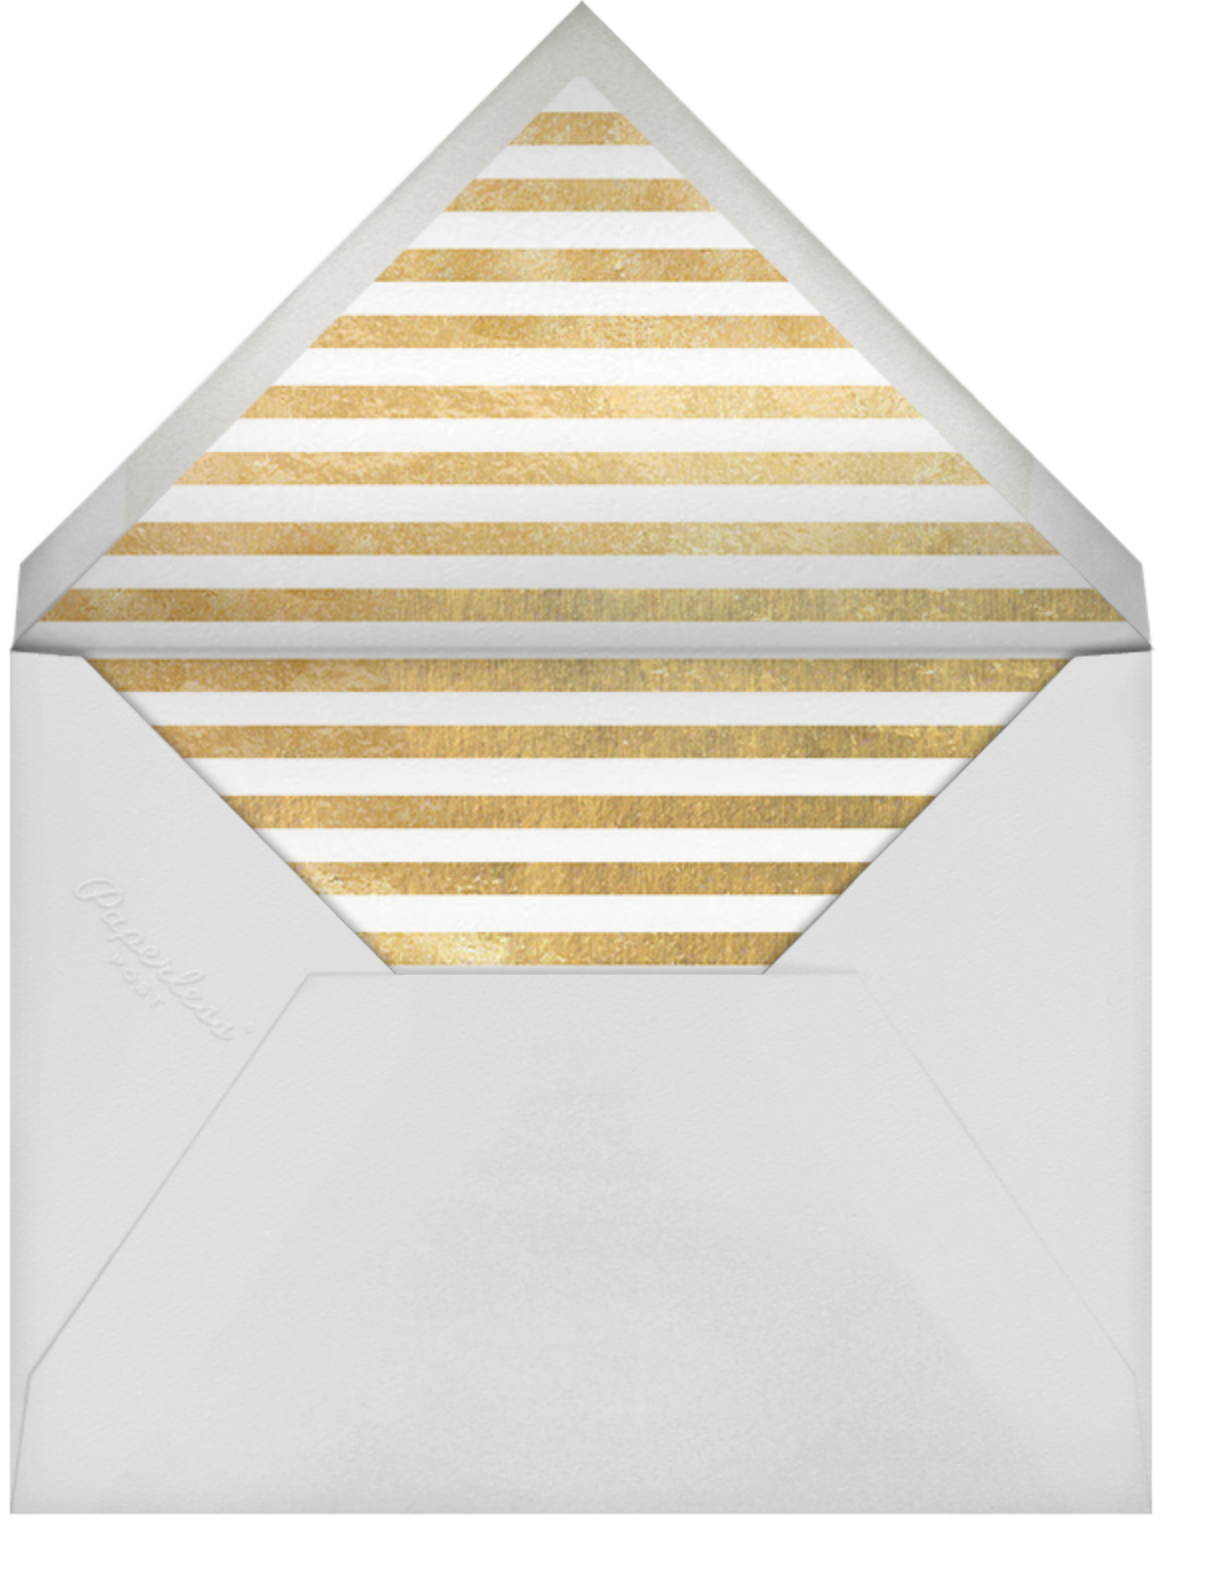 Confetti (Invitation) - White/Gold - kate spade new york - Happy hour - envelope back